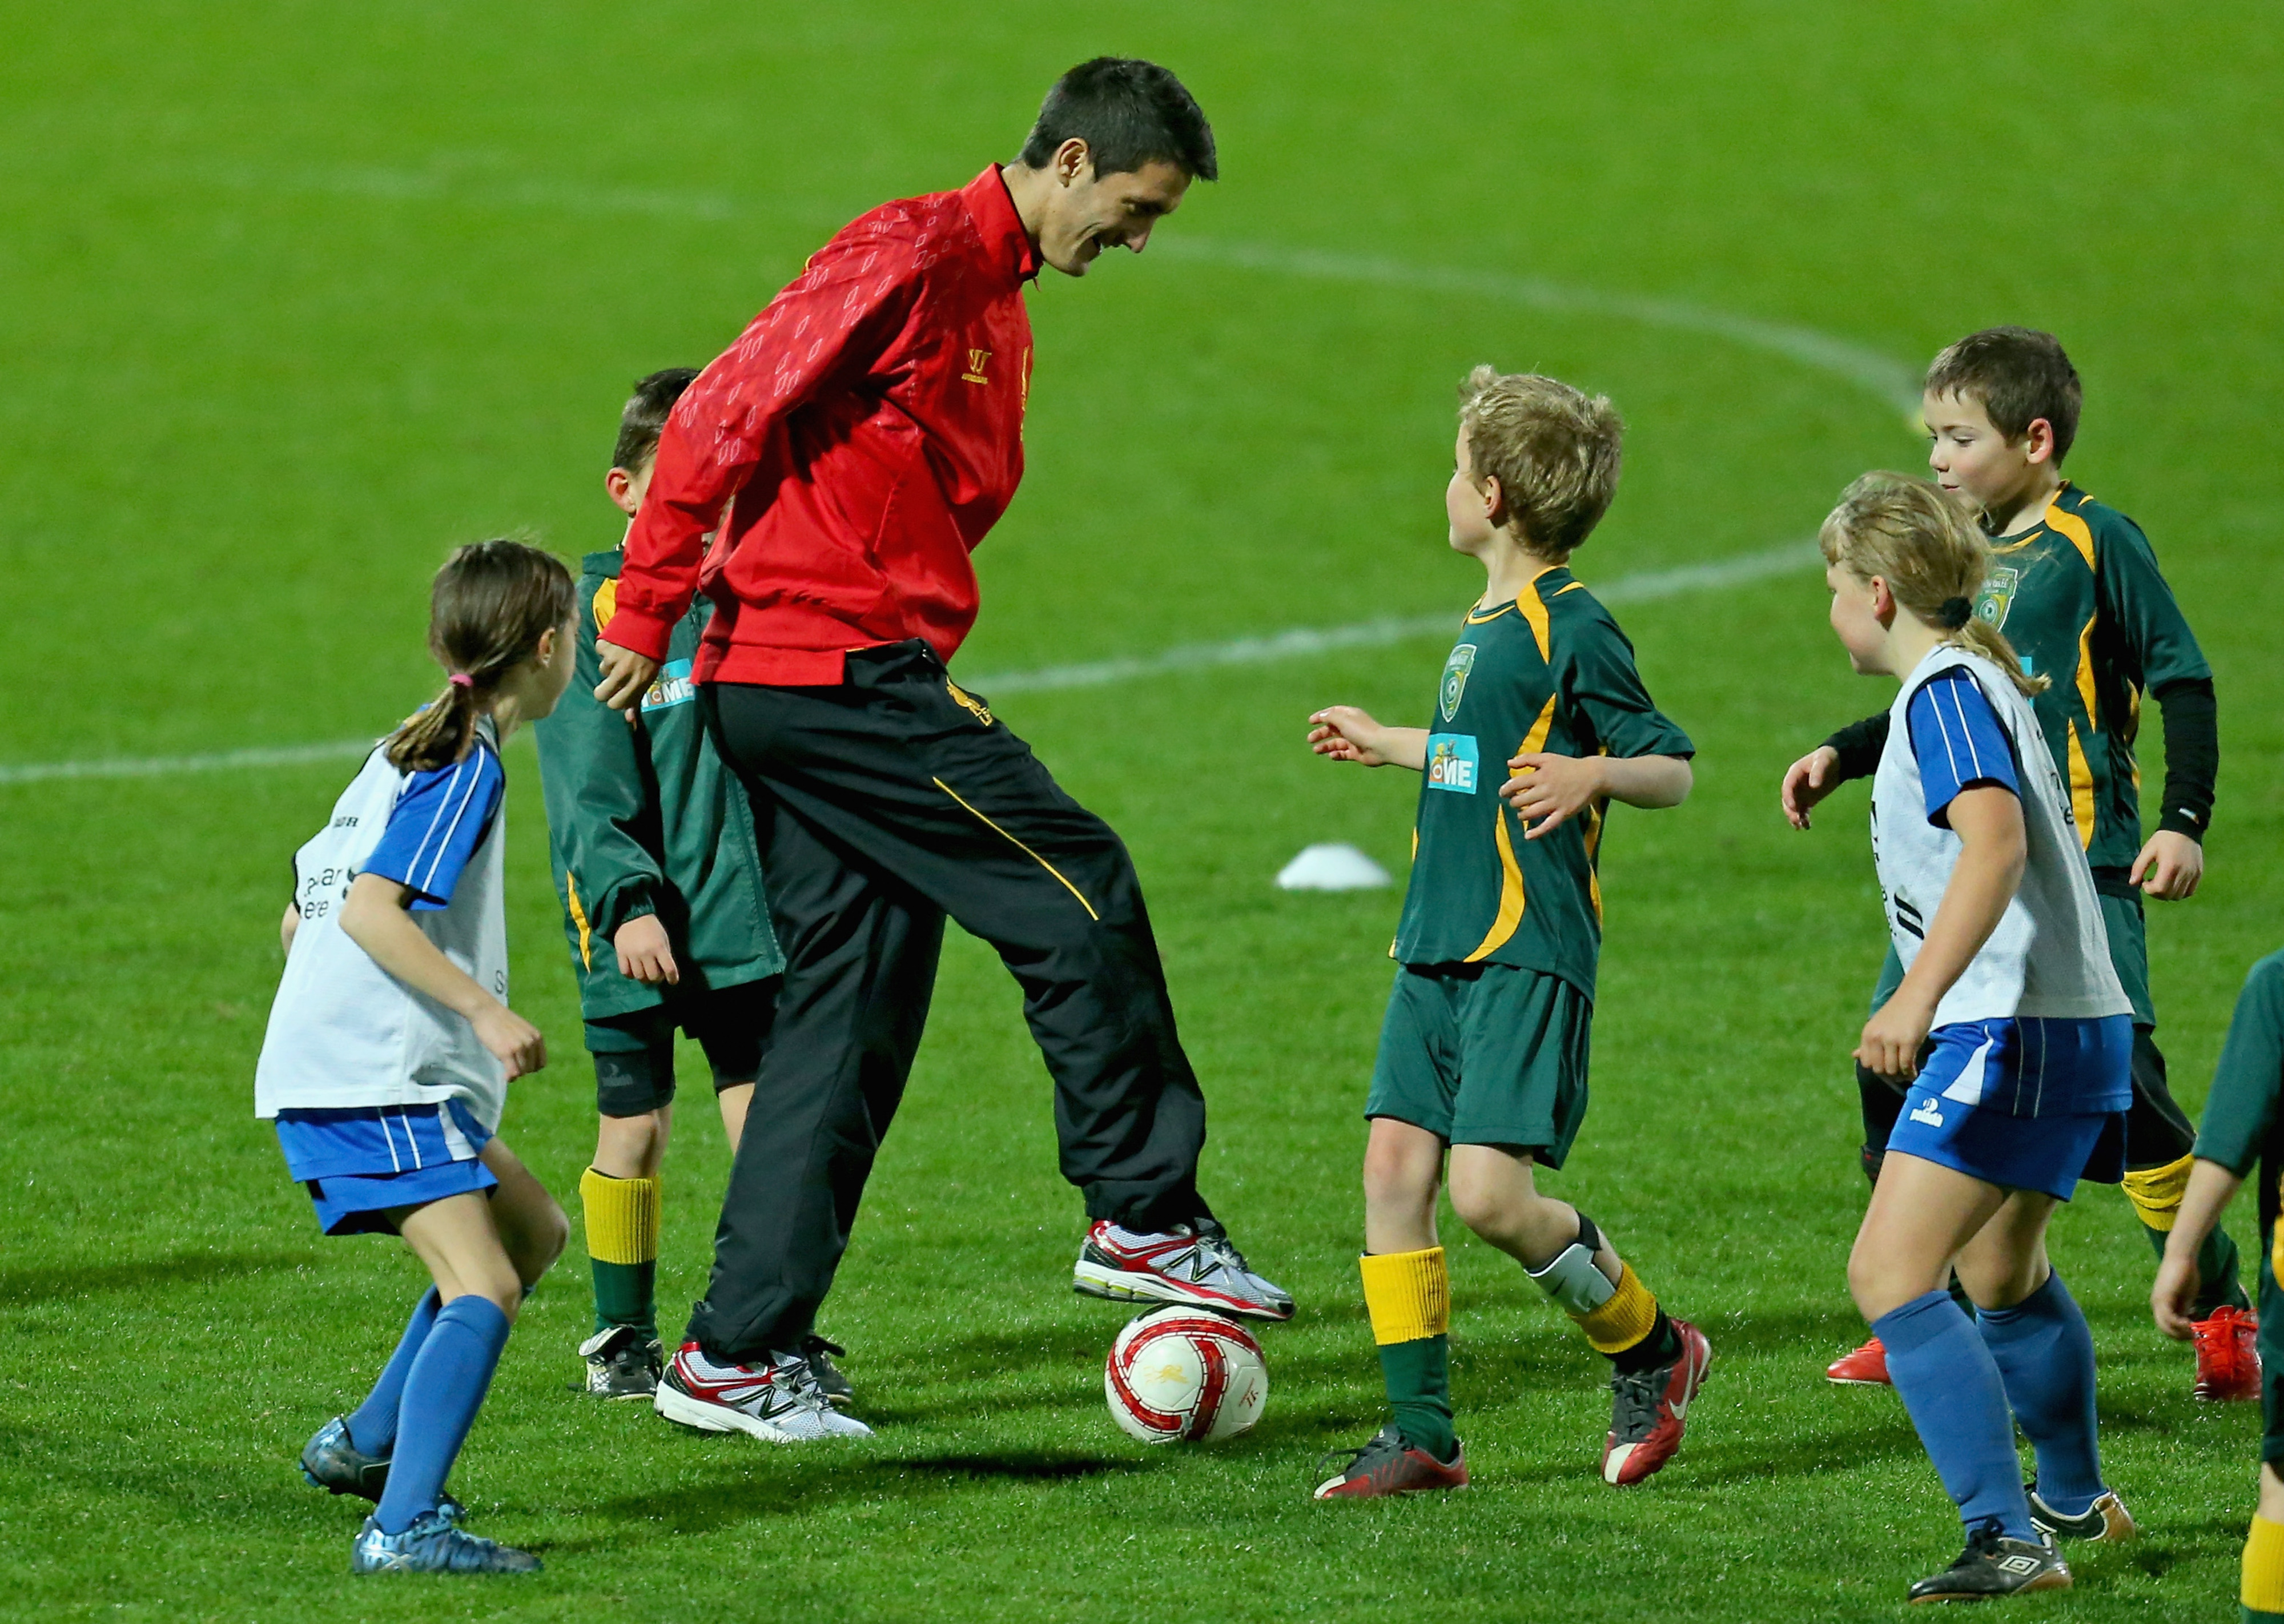 He can keep the ball away from FIVE little kids? Sign him up!